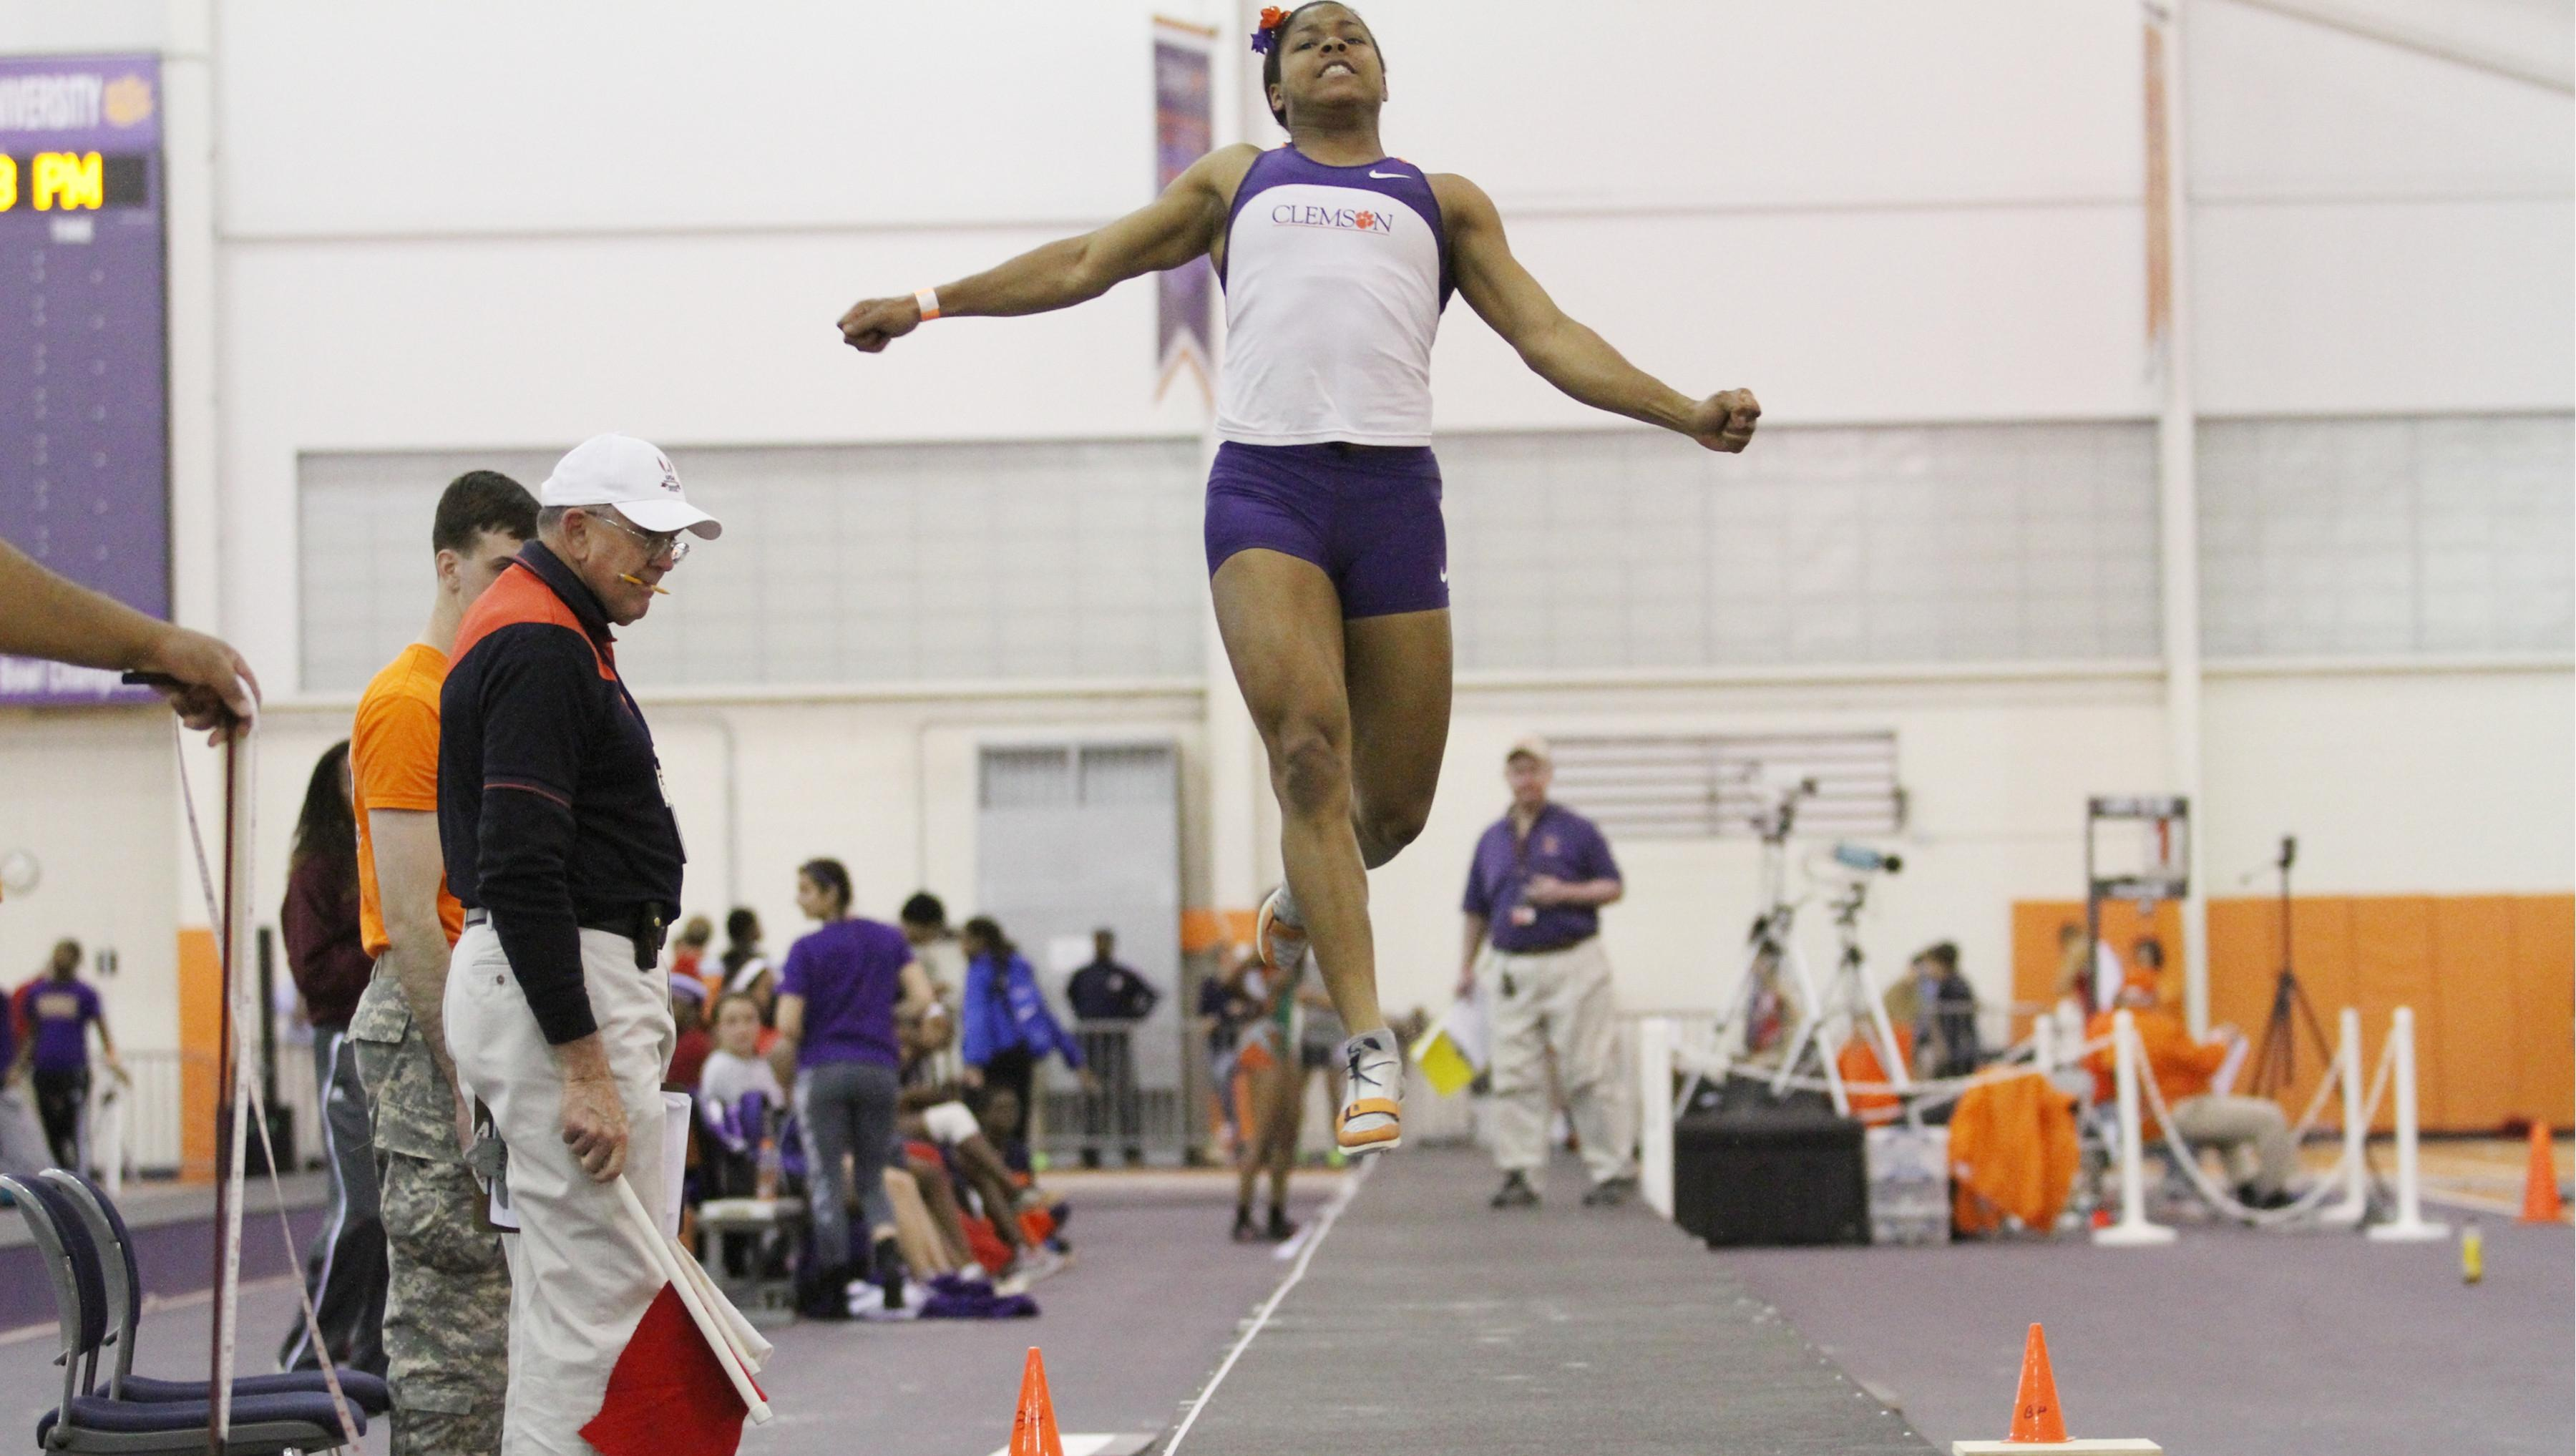 Fountain Qualifies for NCAA Outdoor Championships in Long Jump